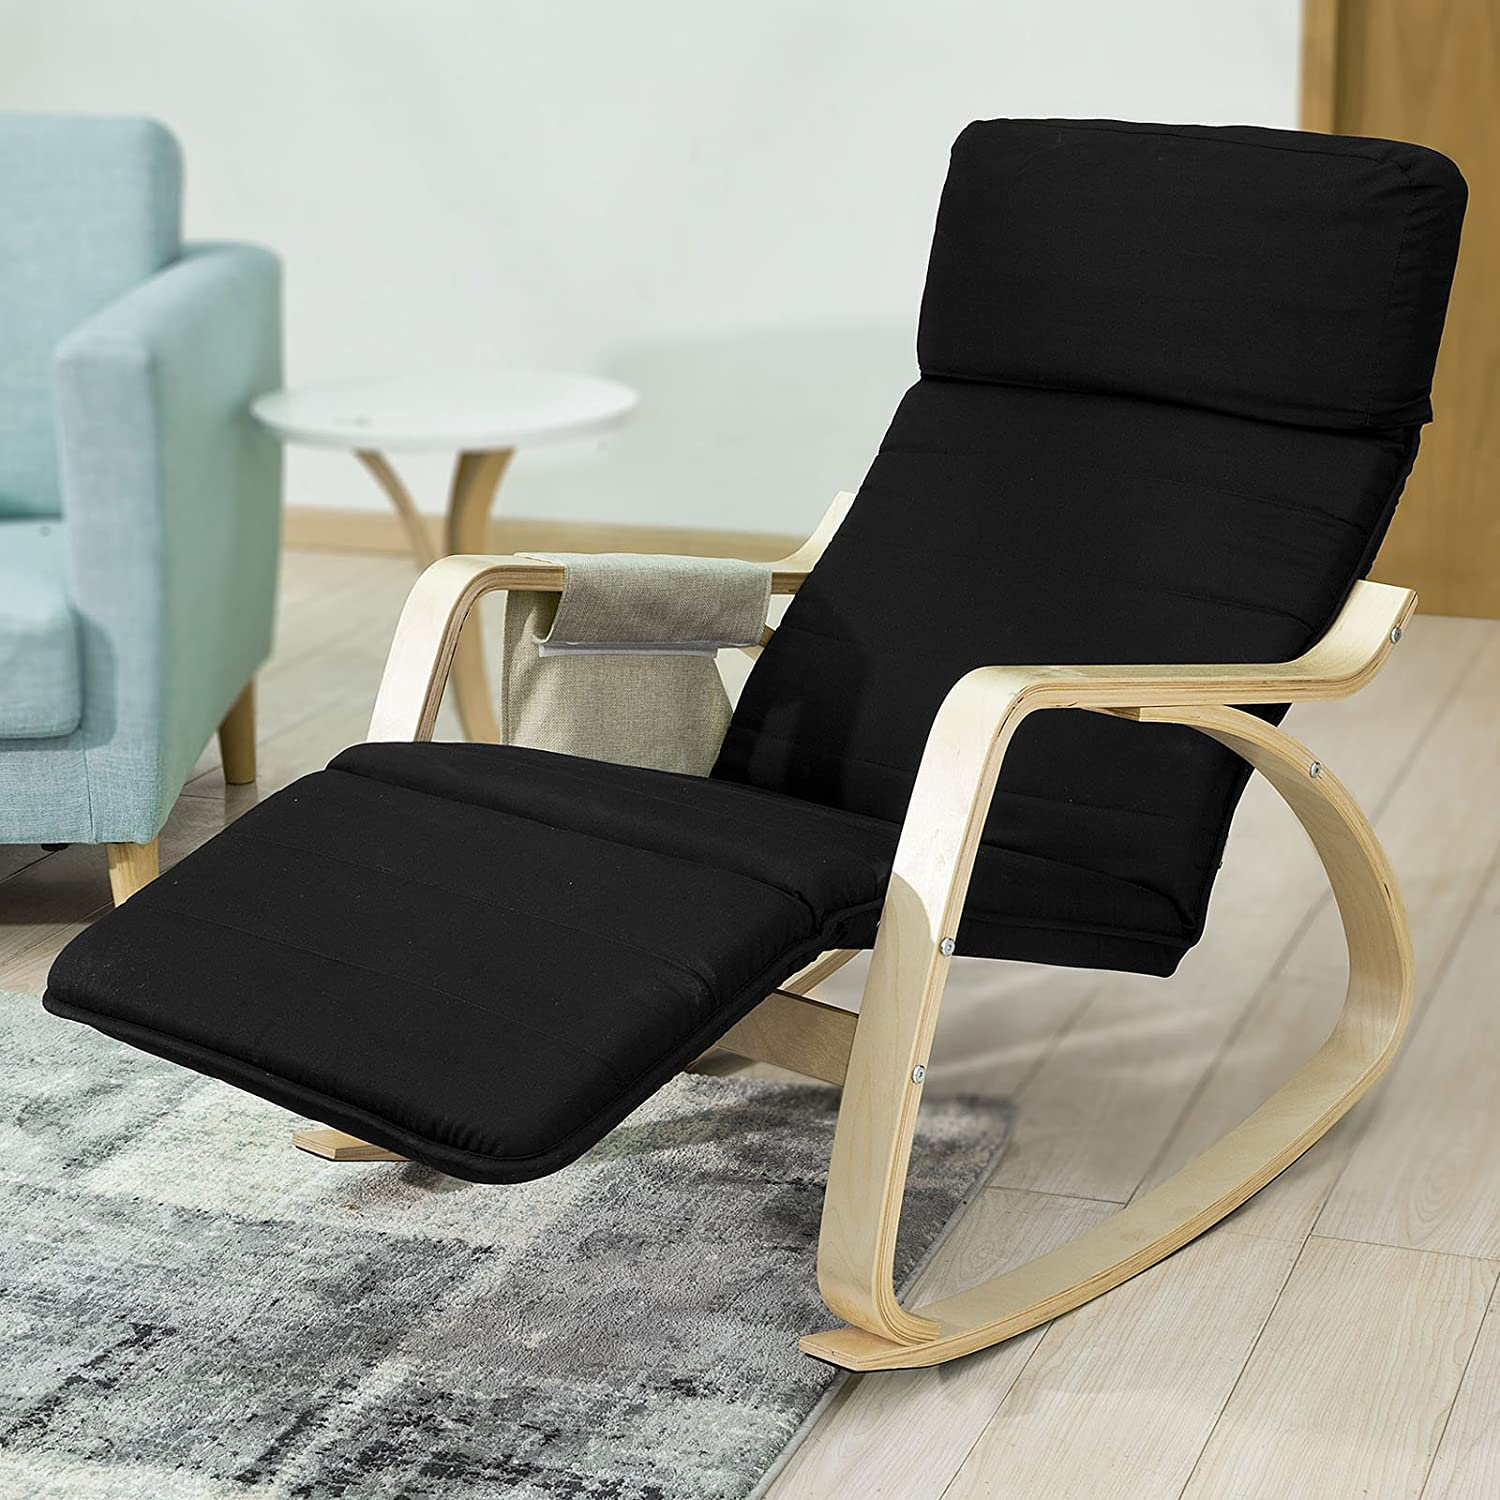 SoBuy NEW fortable Relax Rocking Chair with Footrest Design